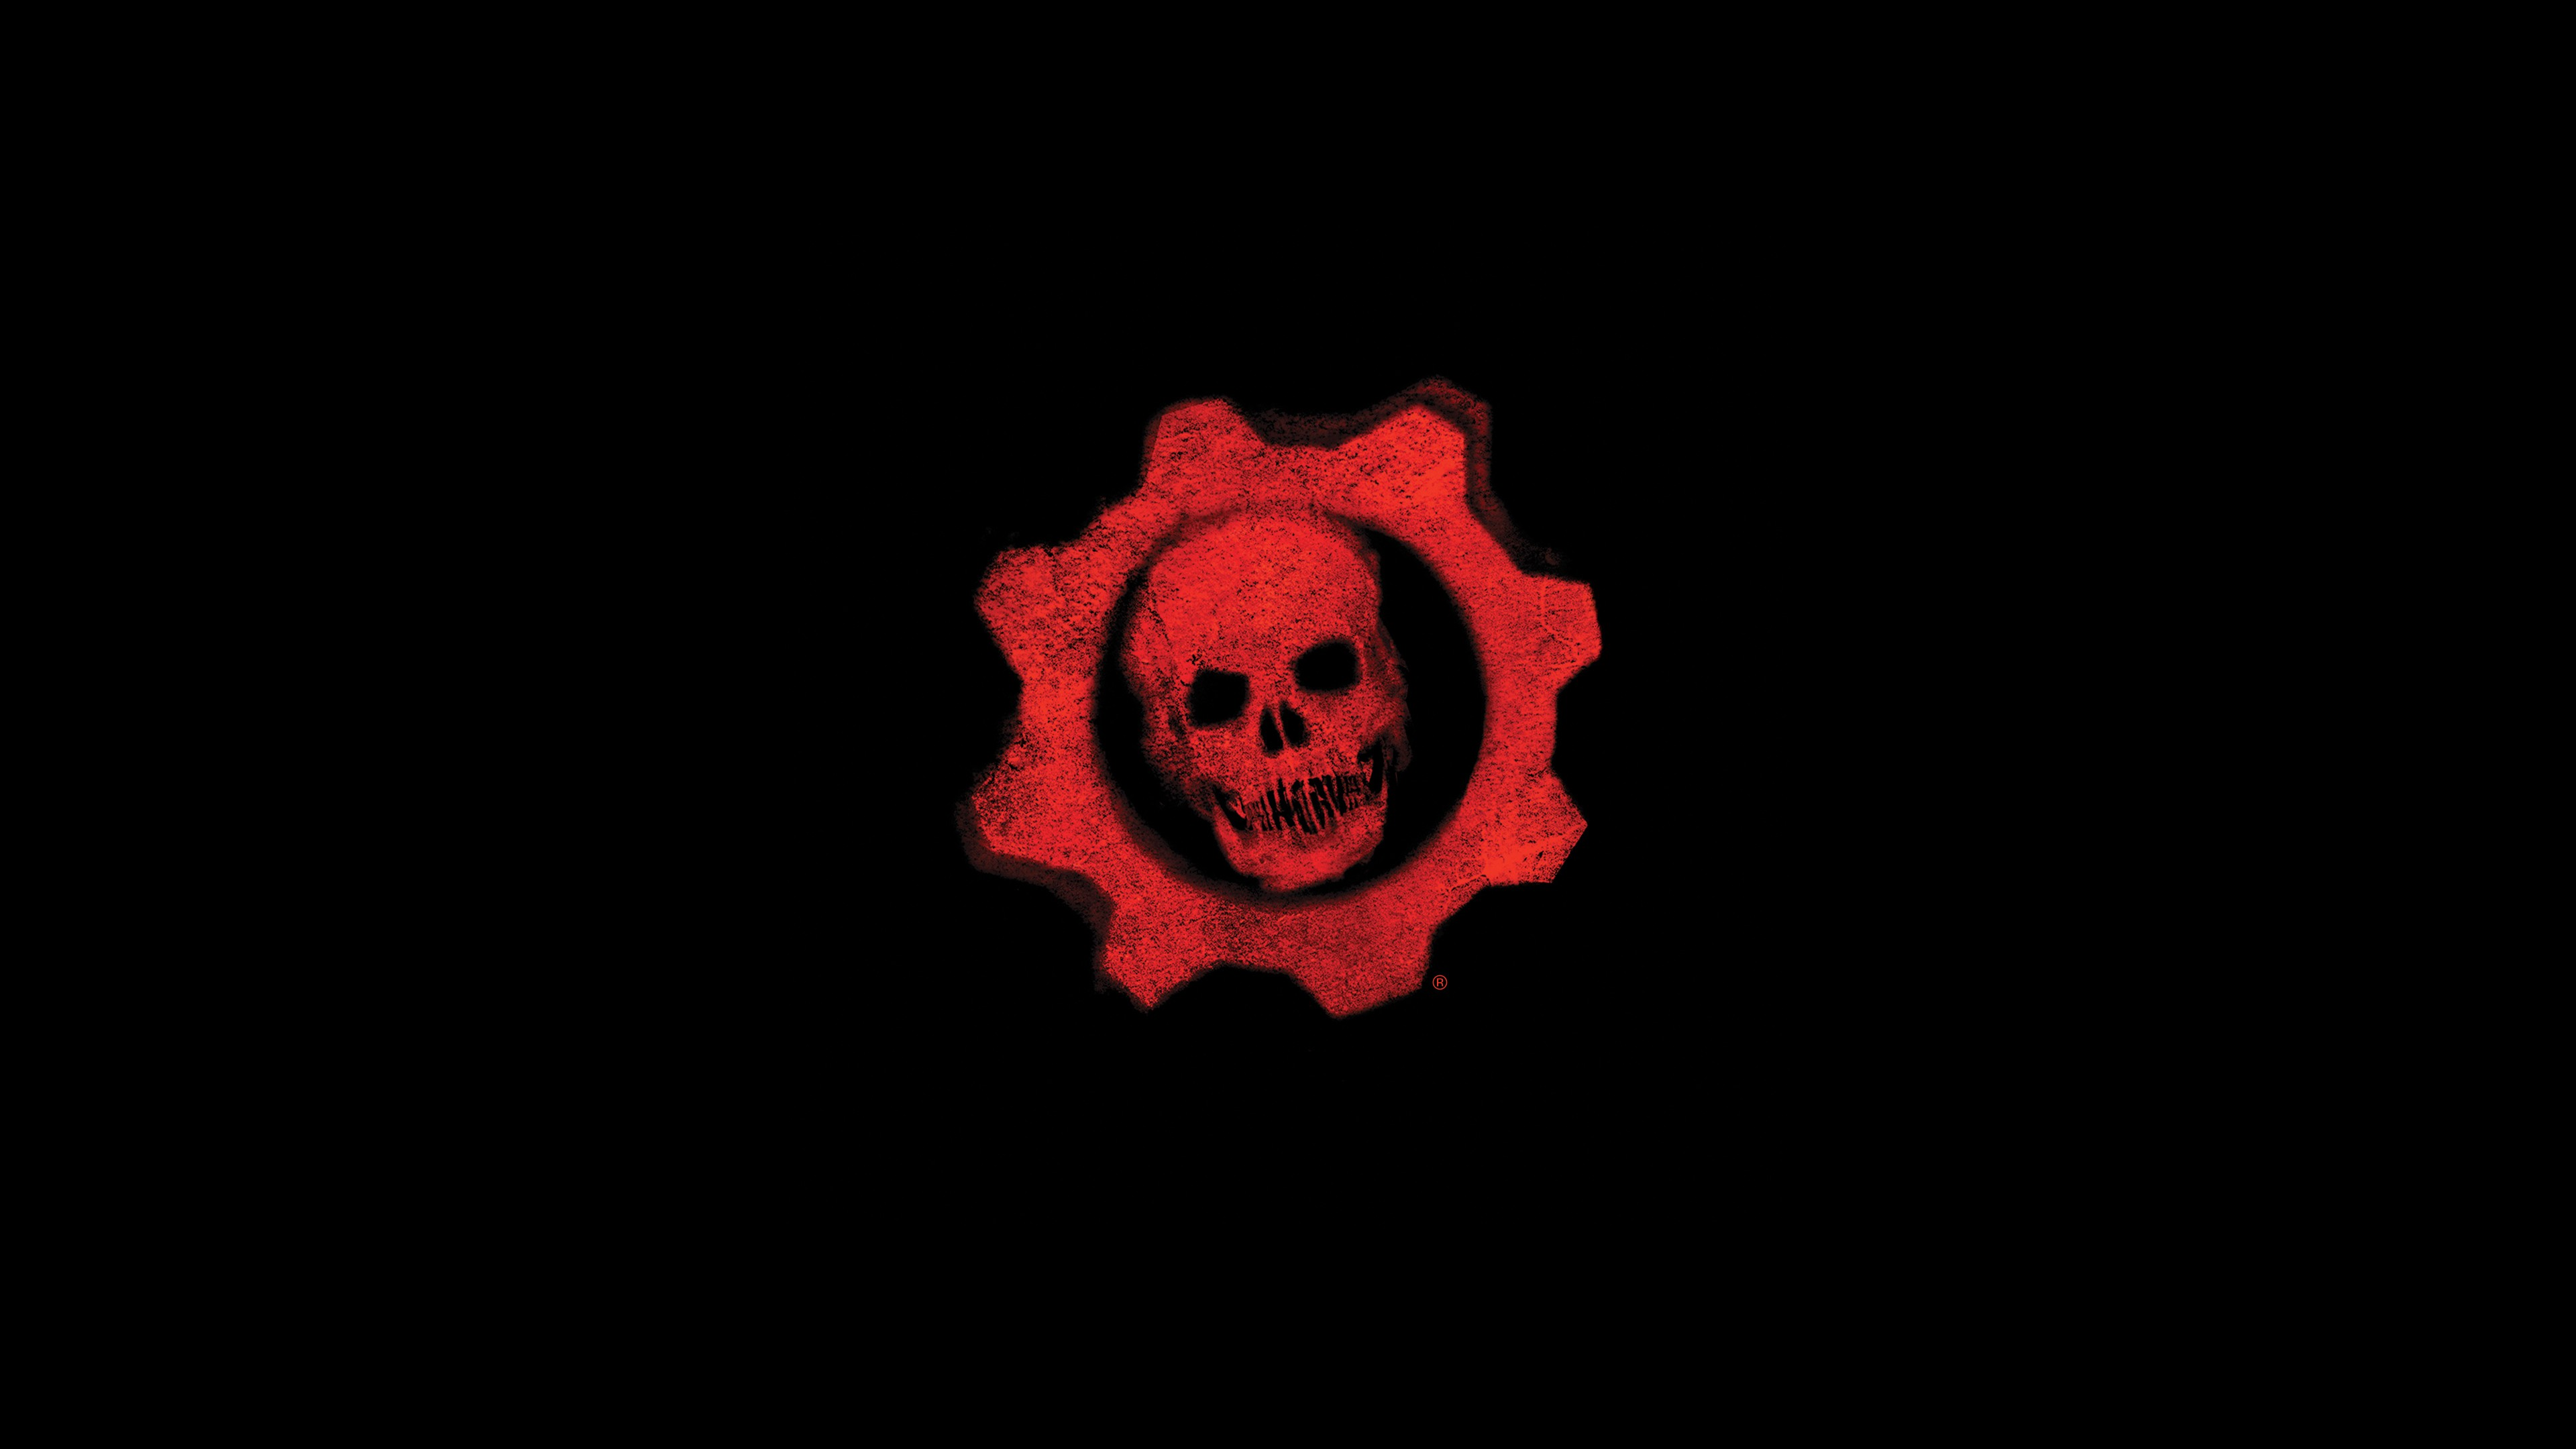 Logo Gears Of War 4k Hd Games 4k Wallpapers Images Backgrounds